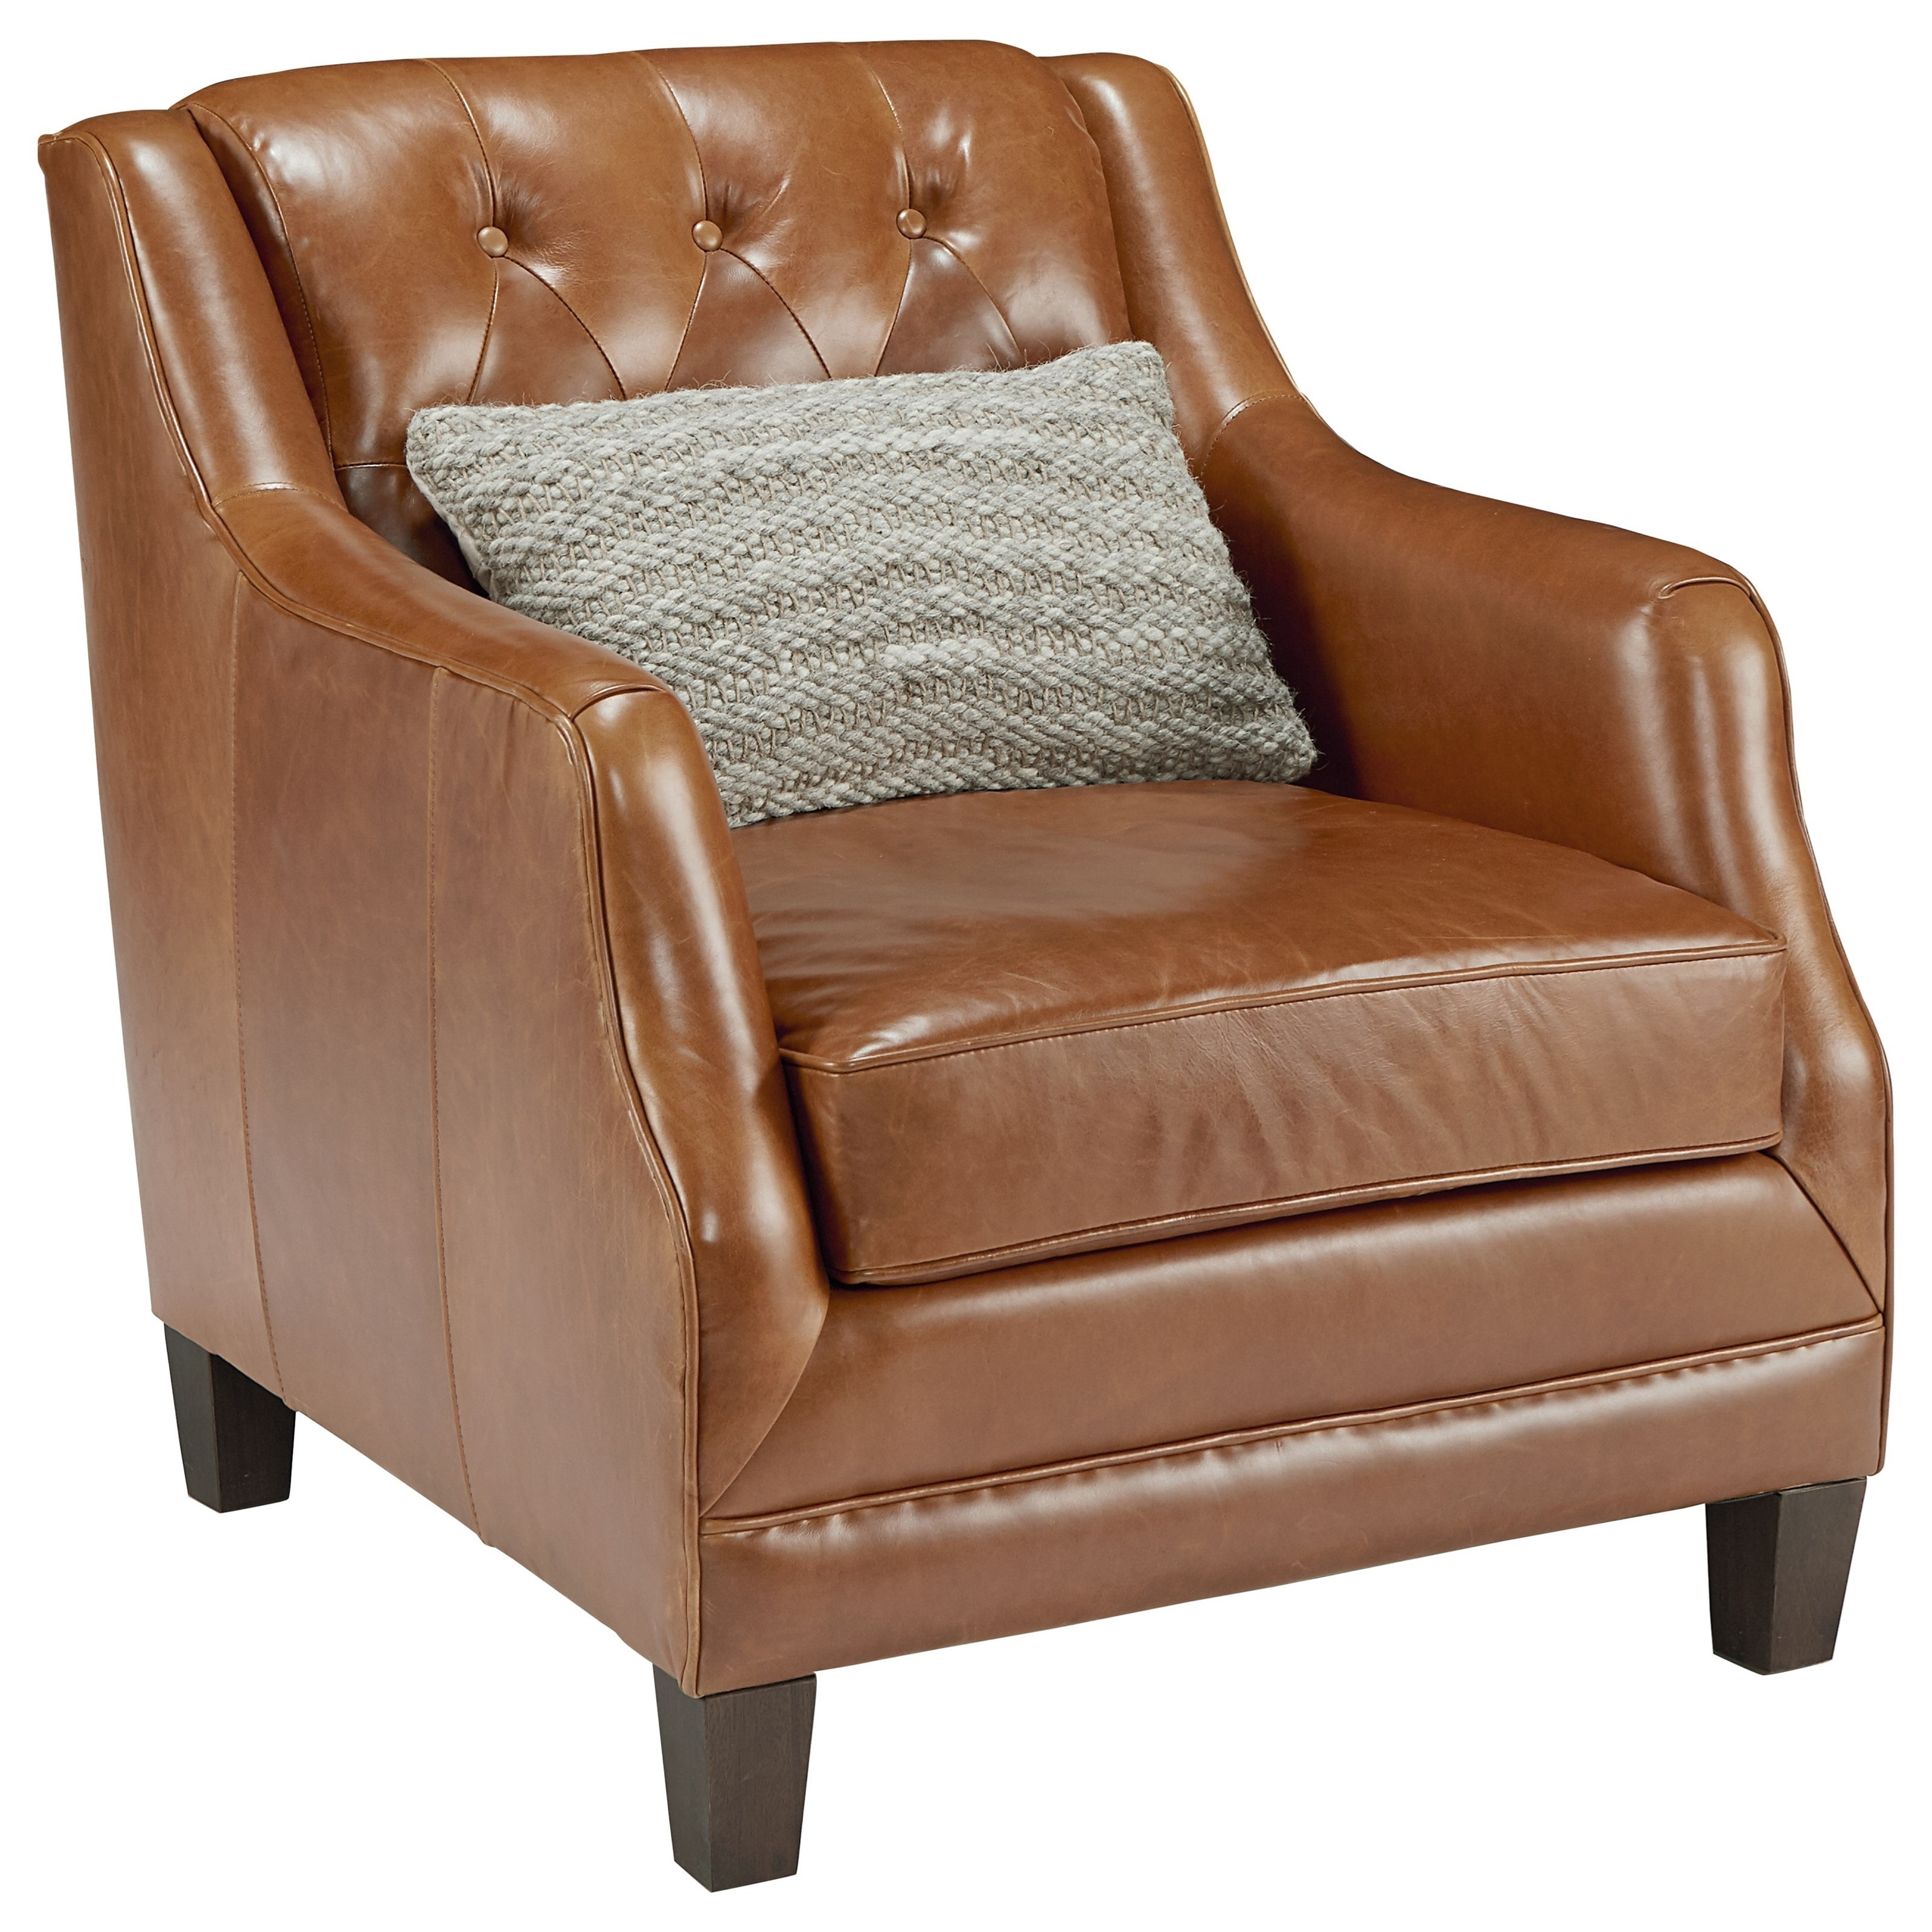 Magnolia Home Revival Arm Chairs Intended For Most Current Leather Upholstered Chair With Button Tuftingmagnolia Home (#8 of 20)